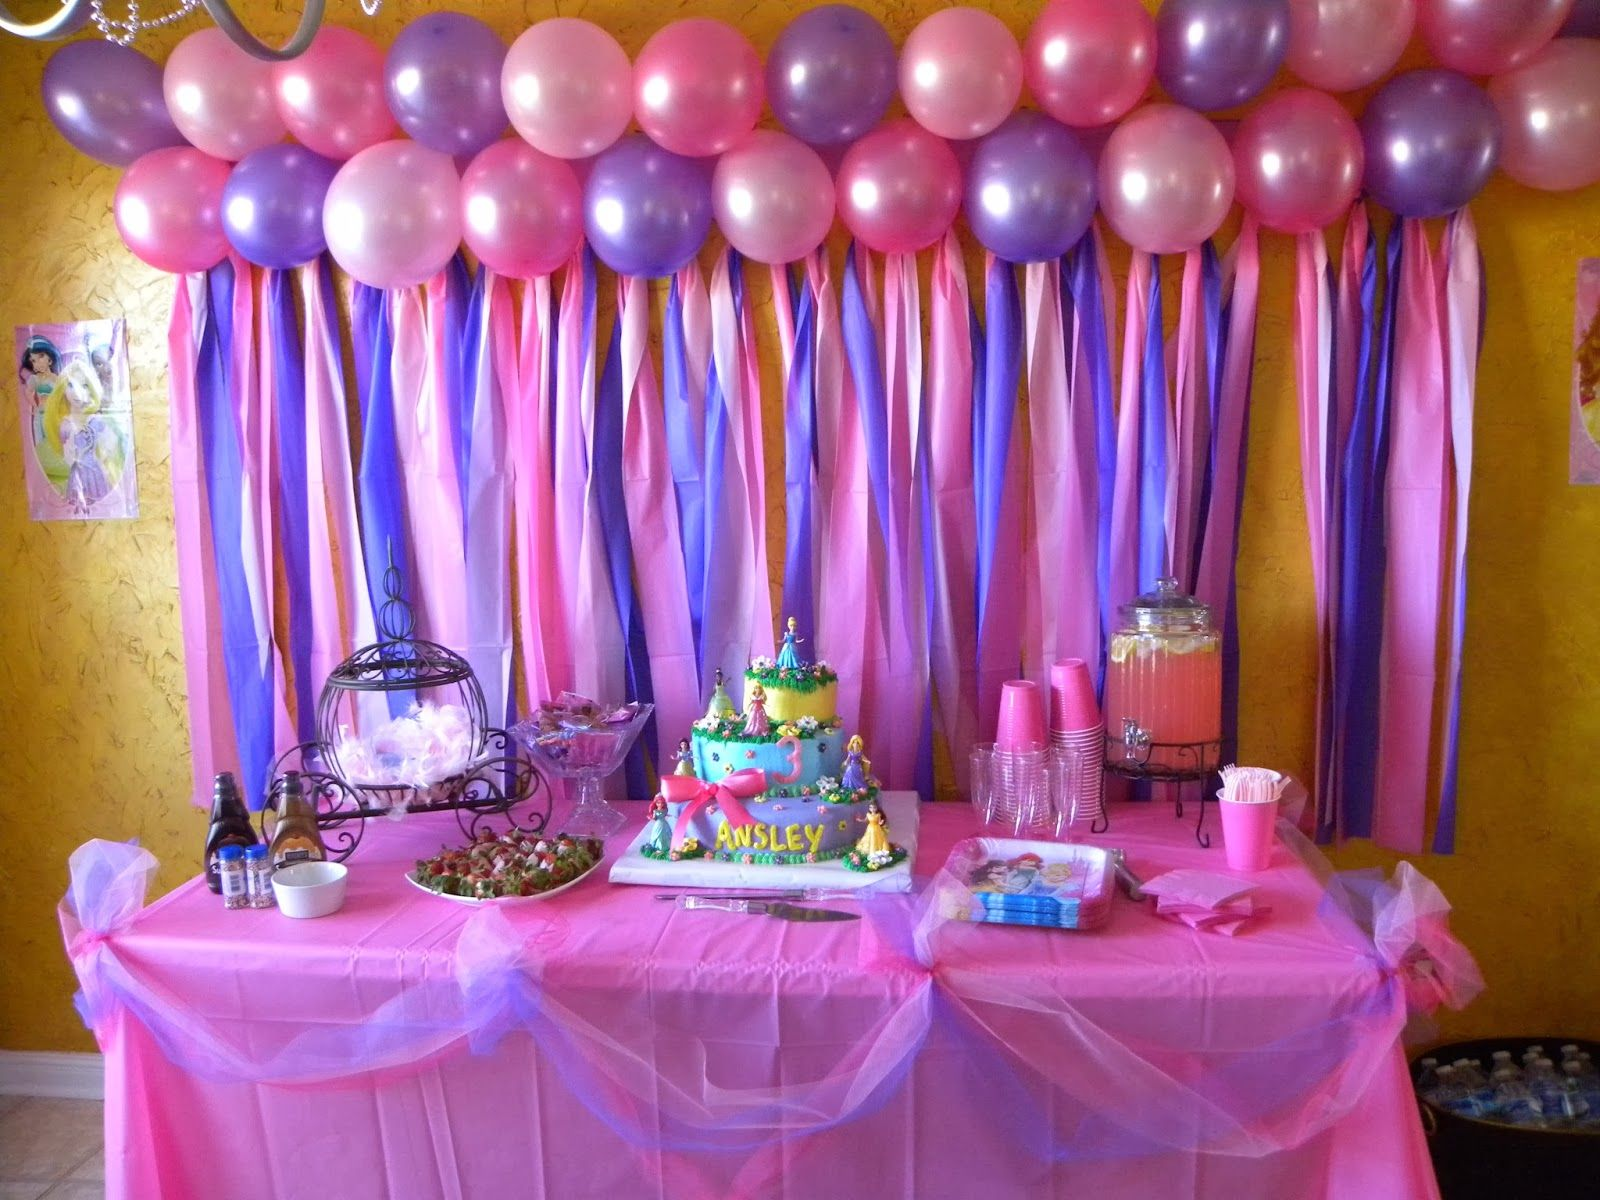 Birthday Cake Table Decoration Ideas : Disney Princess Birthday. Cake table Ansley s 3rd ...